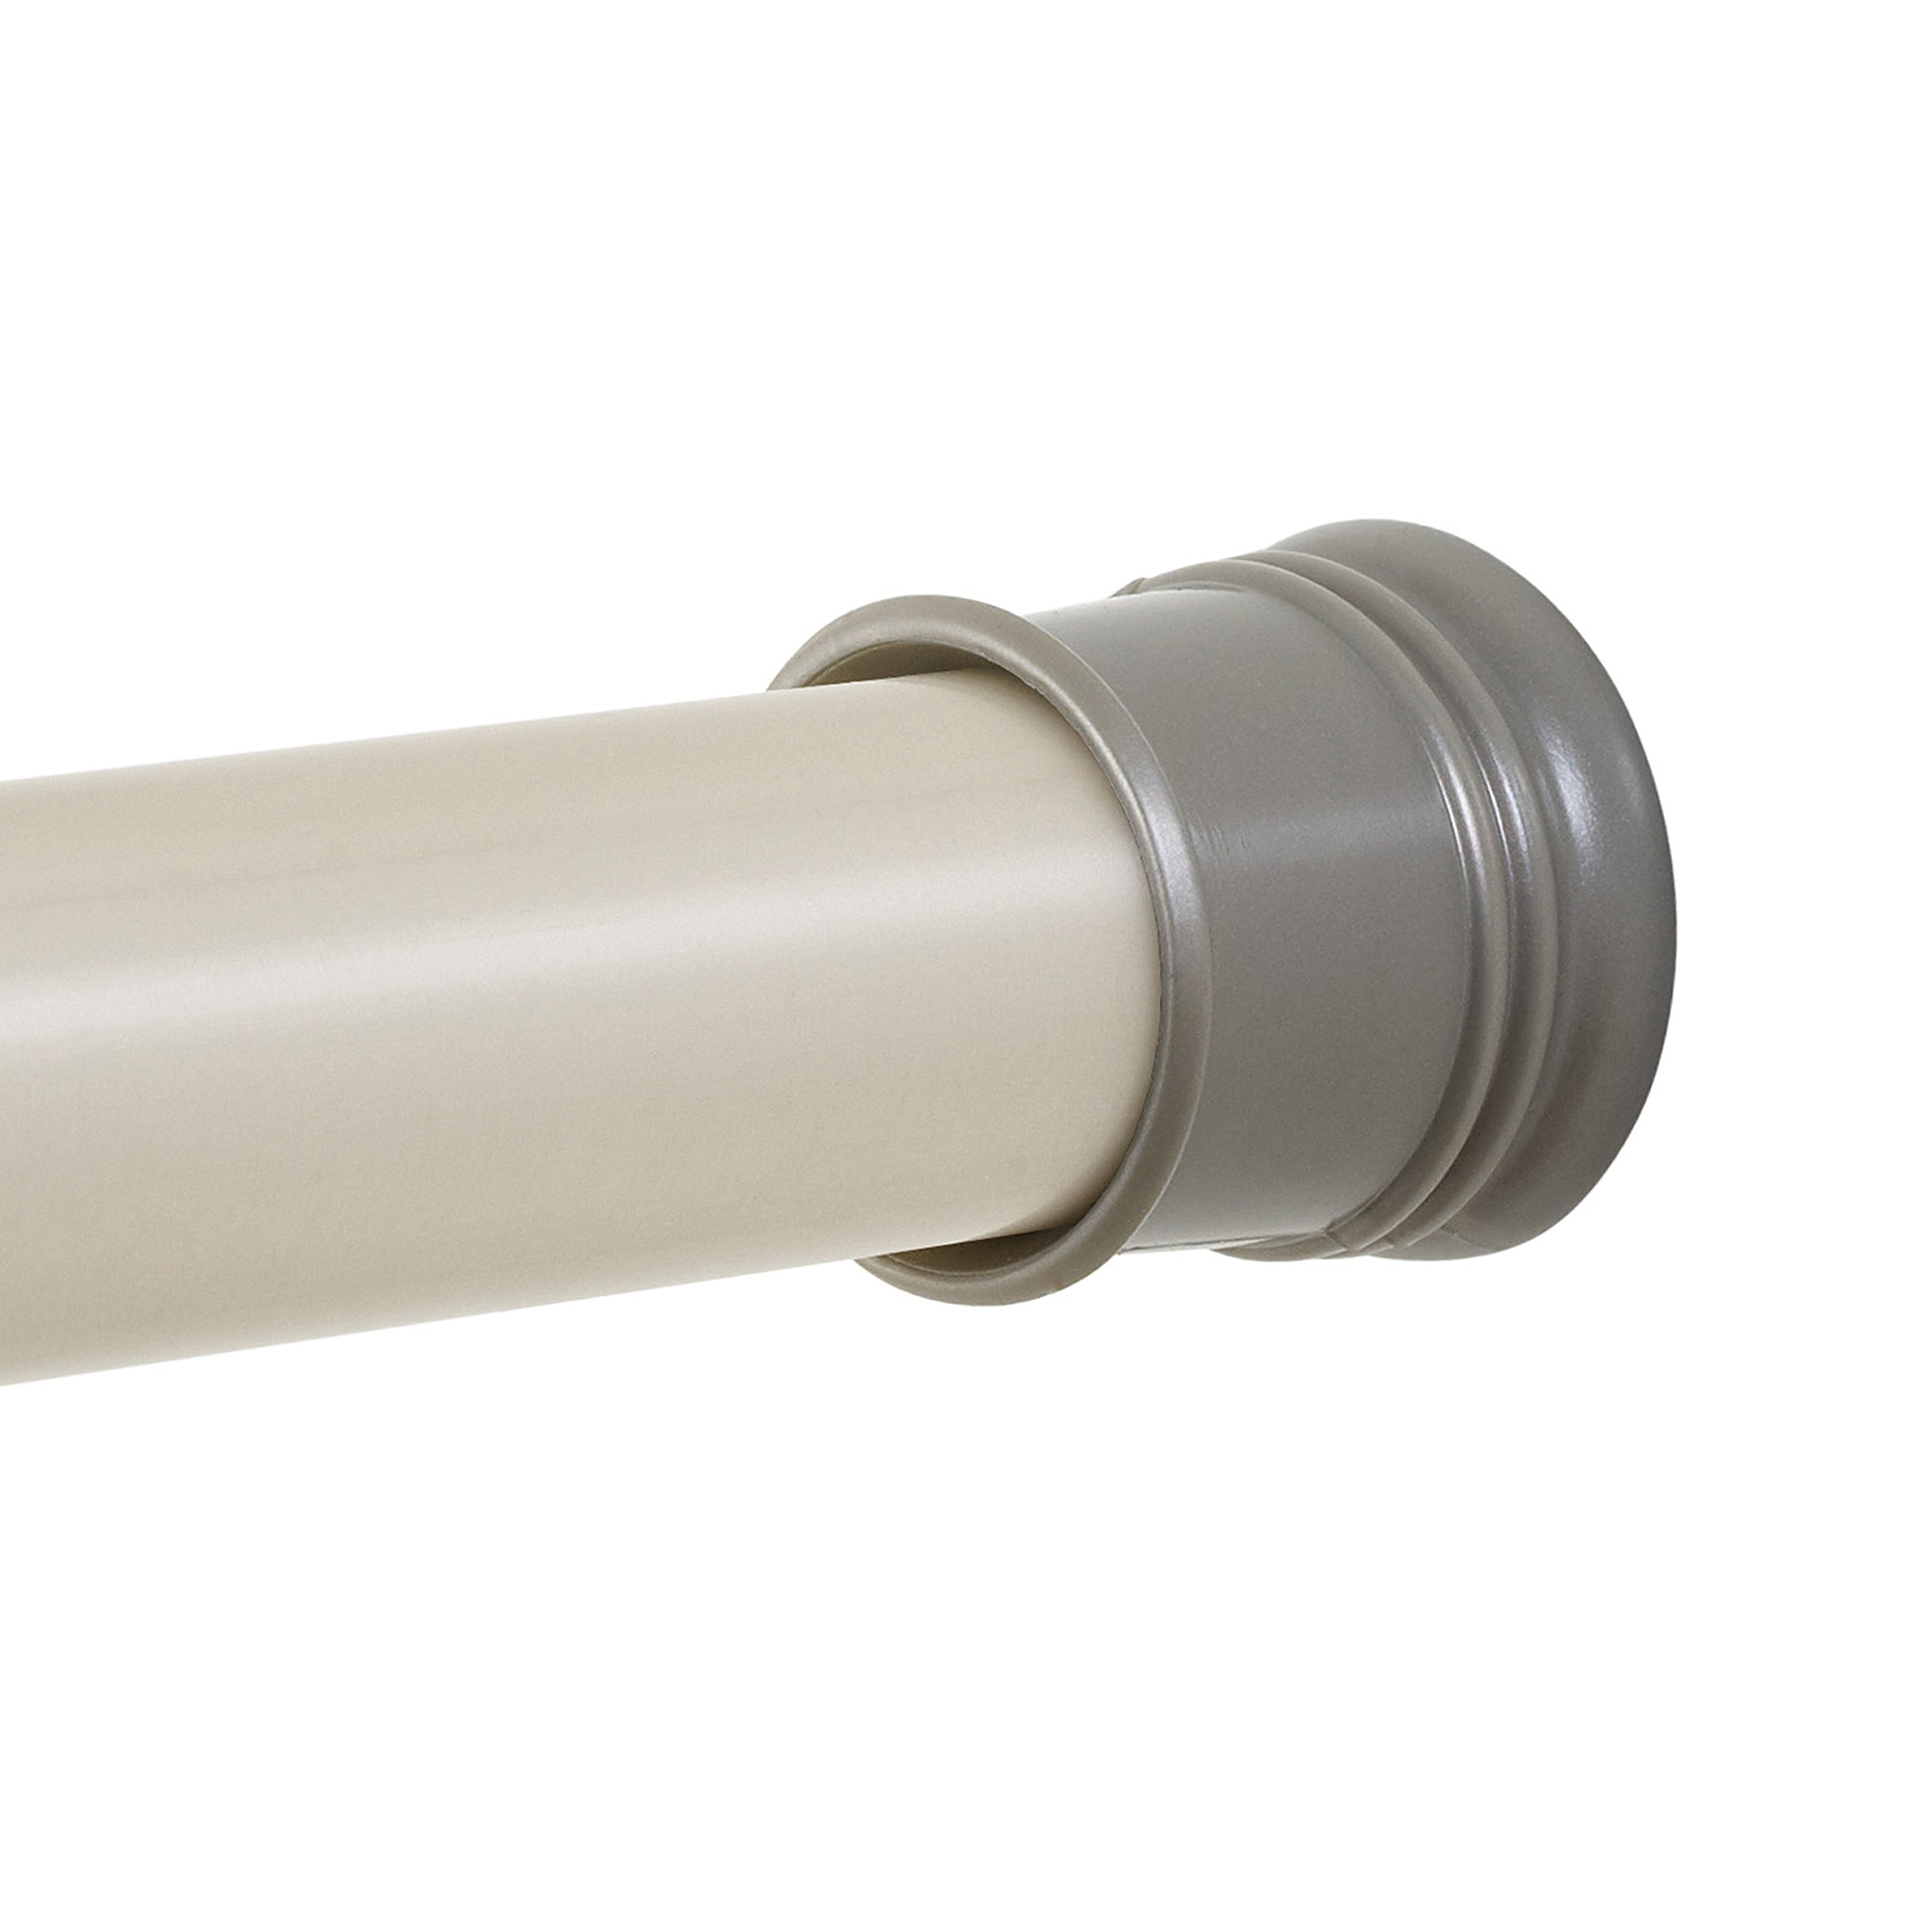 Zenna Home 505ST, Tension Shower Curtain Rod, 44 to 72-Inch, Brushed Nickel